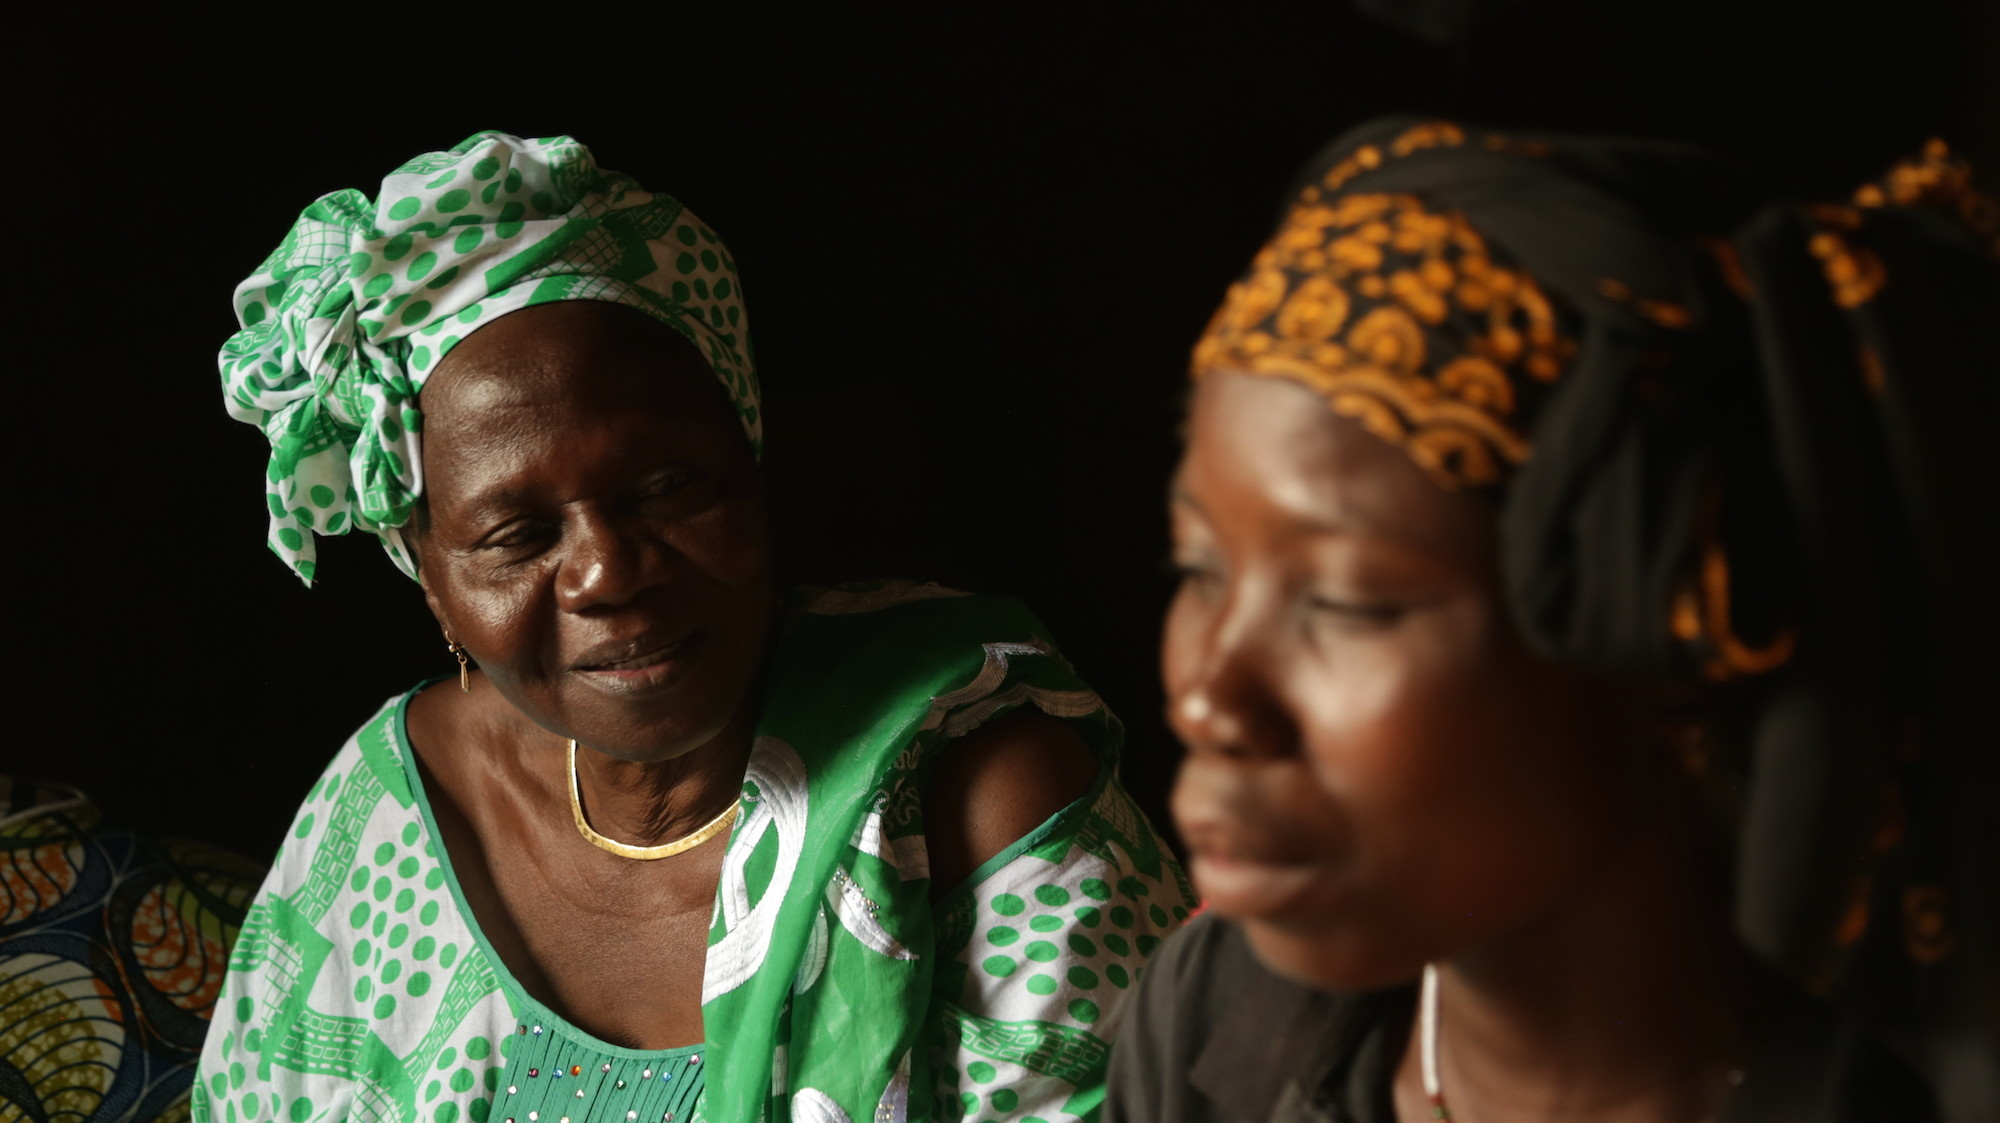 Women's rights activist Bibata Ouedraogo exchanges with Abibou Sanga during an individual counseling session on sexual and reproductive rights in the village of Sissaba, Burkina Faso. Because the themes she discusses sometimes discourage discourse in large groups, she takes the time to meet with individuals and small groups to address their specific issues. Photos were taken during the filming of a video featuring women's rights activist Bibata Ouedraogo in Ouahigouya, Burkina Faso, as part of Amnesty International?s My Body My Rights global campaign. The campaign will be launched in Burkina Faso on 15 July 2015. Bibata Ou?draogo is an activist committed to the promotion and protection of women?s rights, including sexual rights and reproductive rights and the right to maternal health. Her work focuses on community outreach on HIV/AIDS, maternal health, violence and discrimination against women, FGM, forced marriage, early. Bibata Ou?draogo is the president of the Ouahigouya branch of AFEDEB, a women's association for the development of Burkina Faso. Ouahigouya is a town approximately 180 km from the capital Ouagadougou. The association covers 15 sectors surrounding Ouahigouya and nine of the 36 villages of Ouahigouya. Bibata Ou?draogo is a former teacher. She is married and mother of six children. Her passion for human rights has led her to continue working despite her retirement from teaching in 2013.